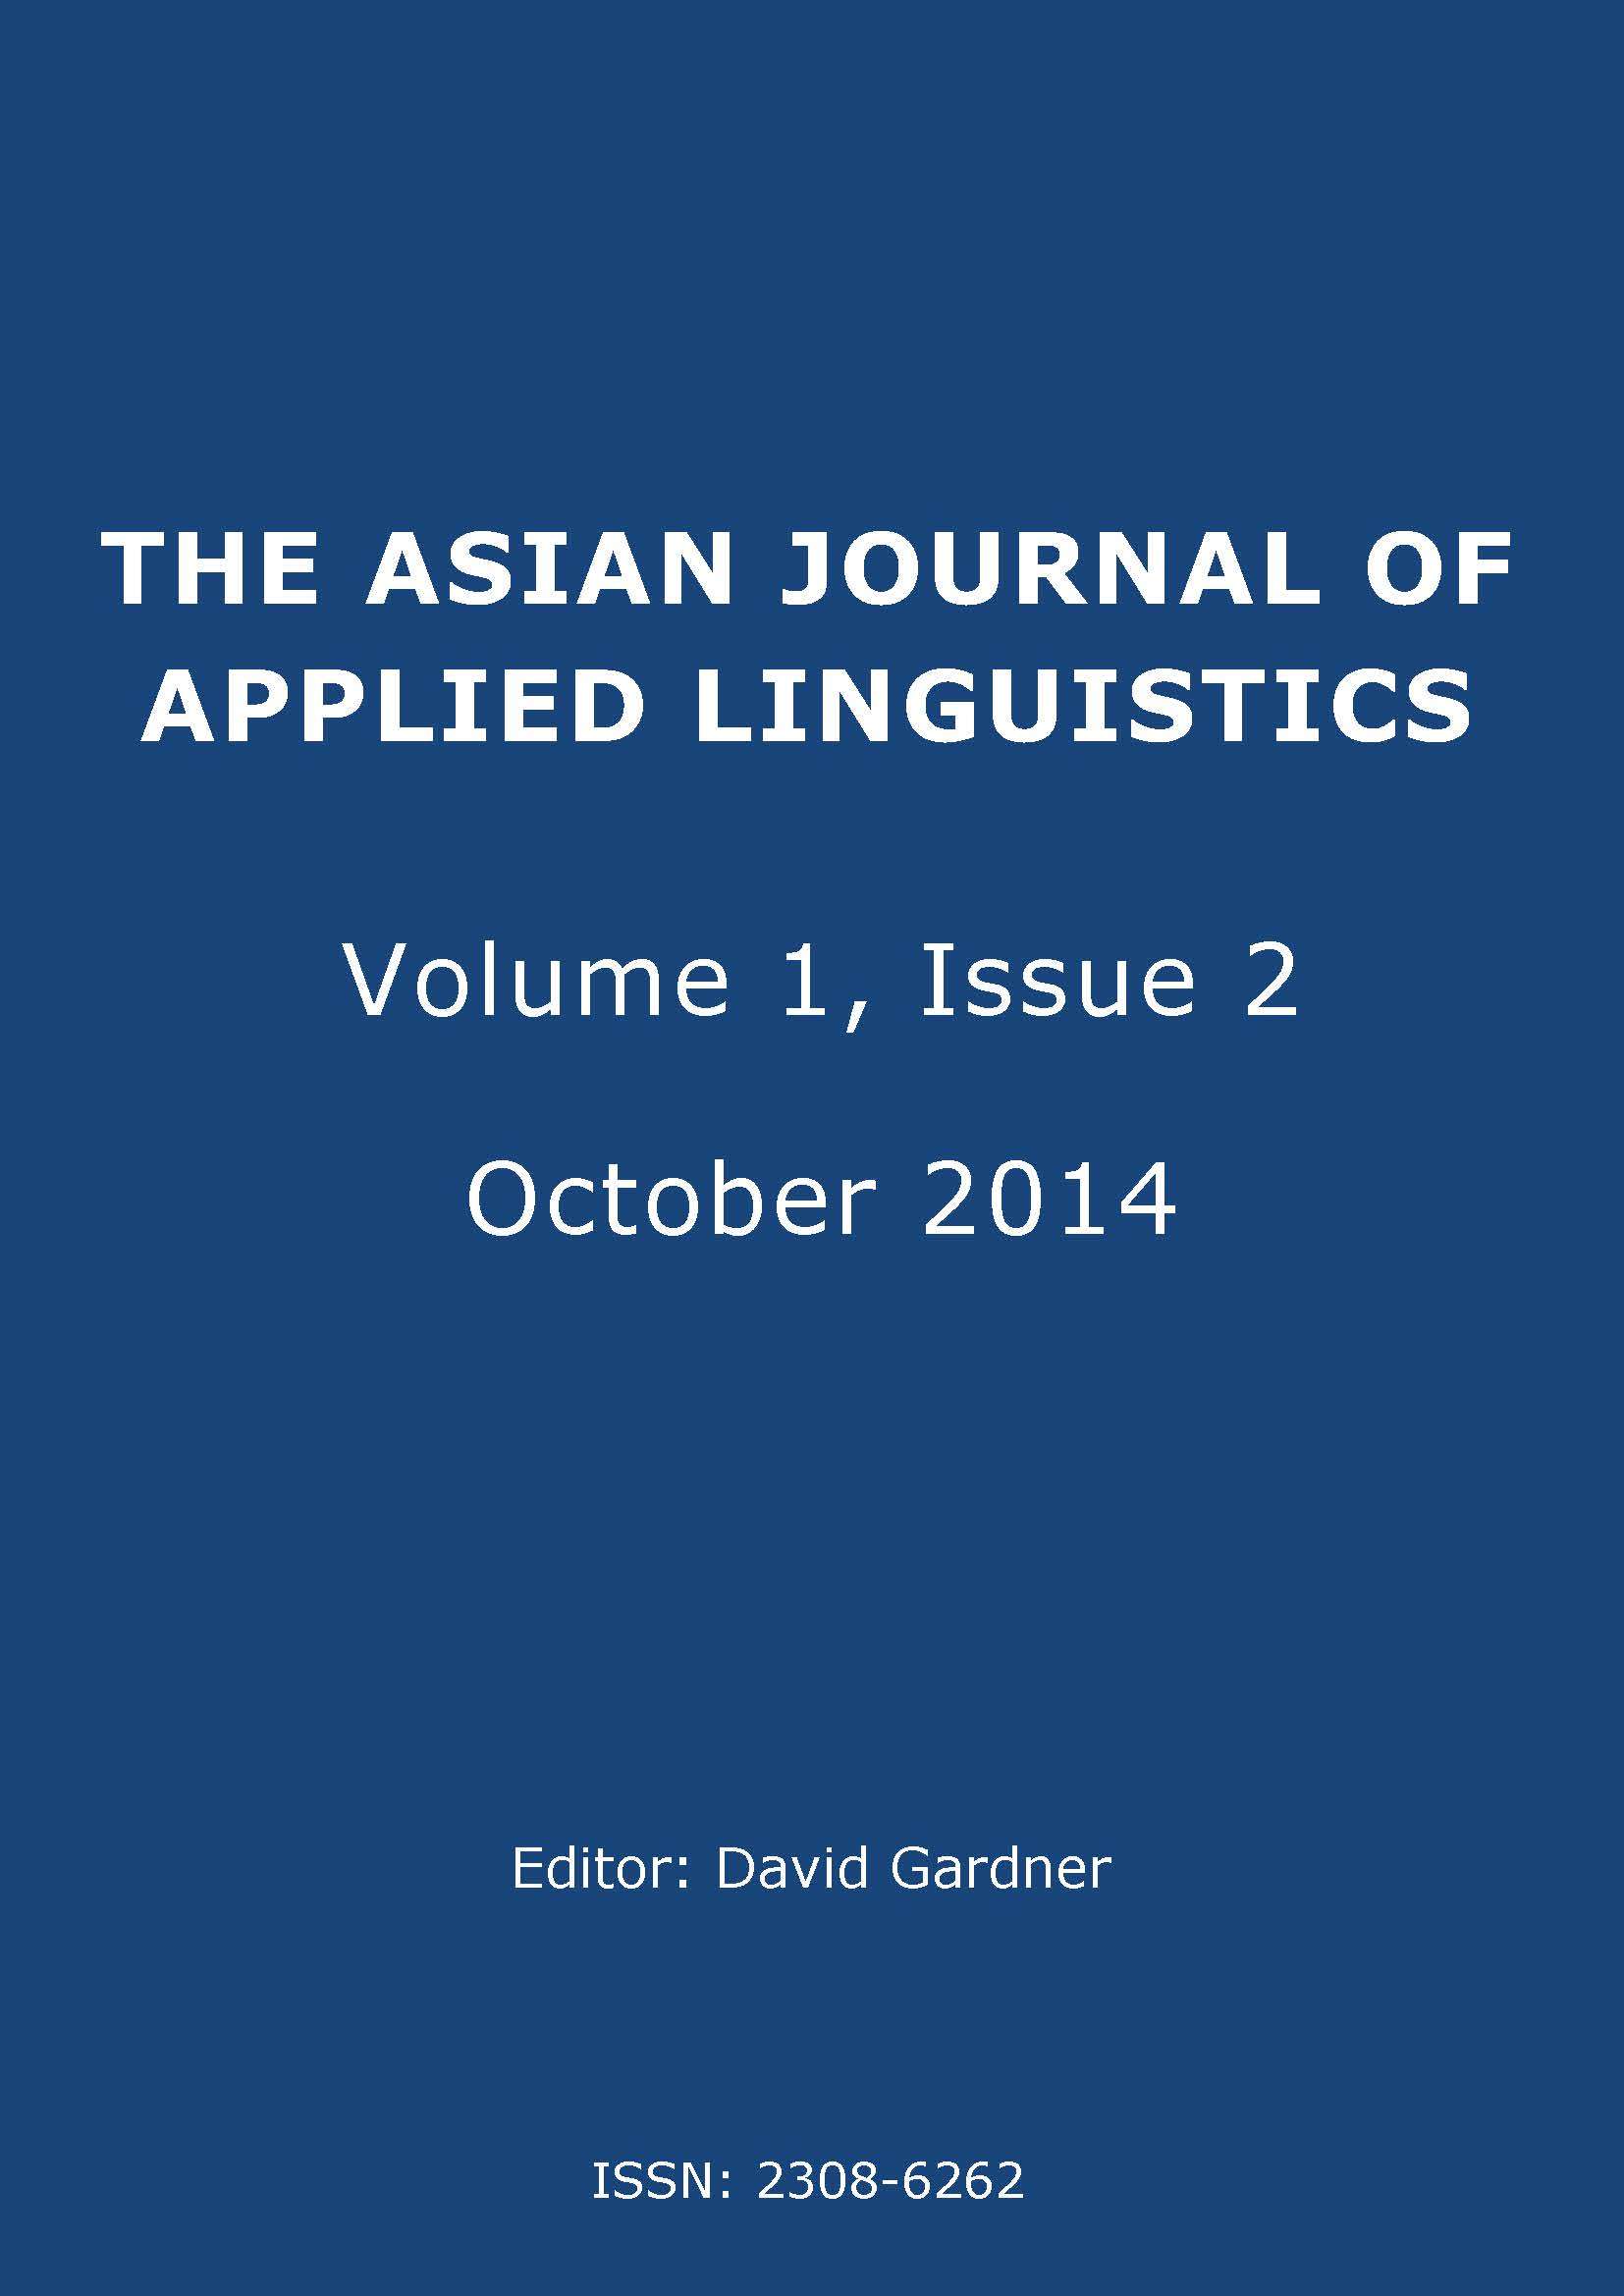 The Asian Journal of Applied Linguistics. Volume 1. Issue 2. October 2014